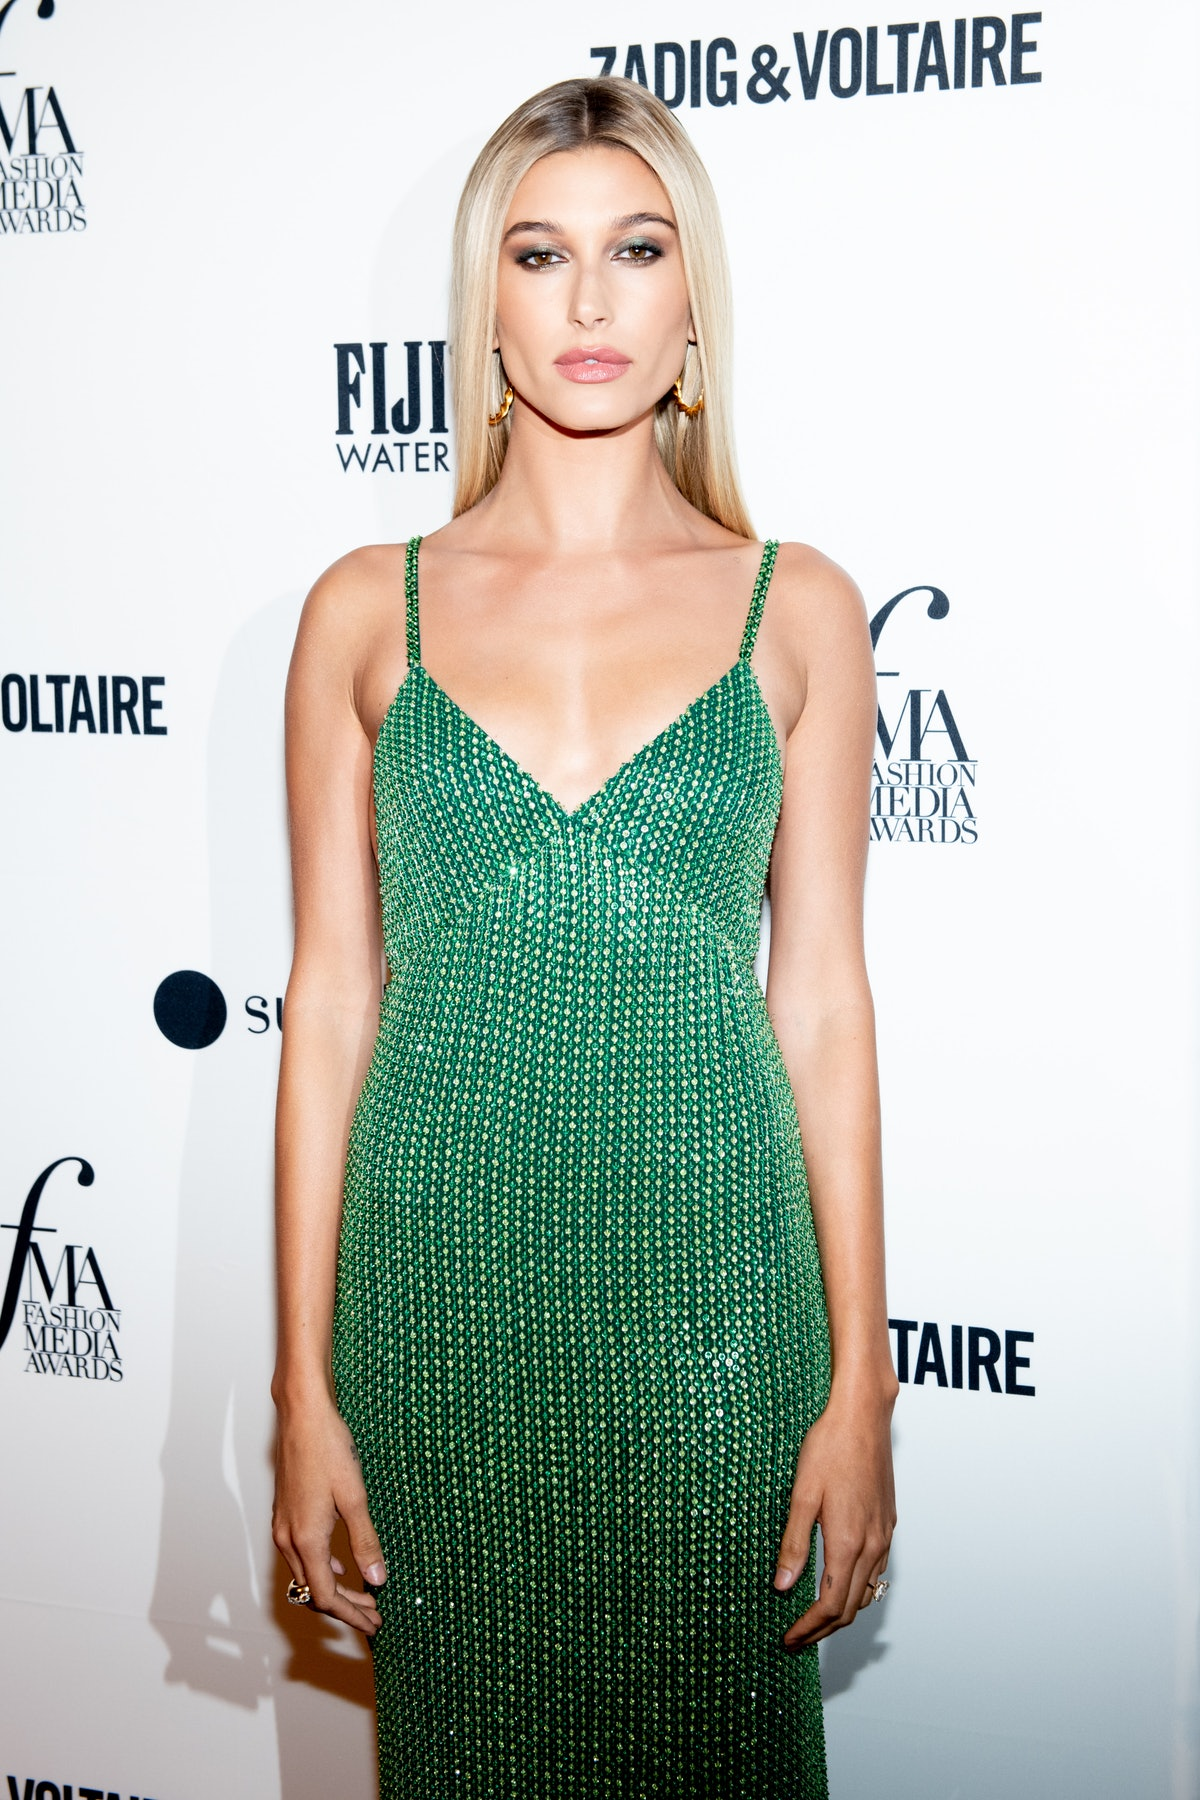 NEW YORK, NY - SEPTEMBER 06:  Hailey Baldwin attends The Daily Front Row 6th Annual Fashion Media Aw...